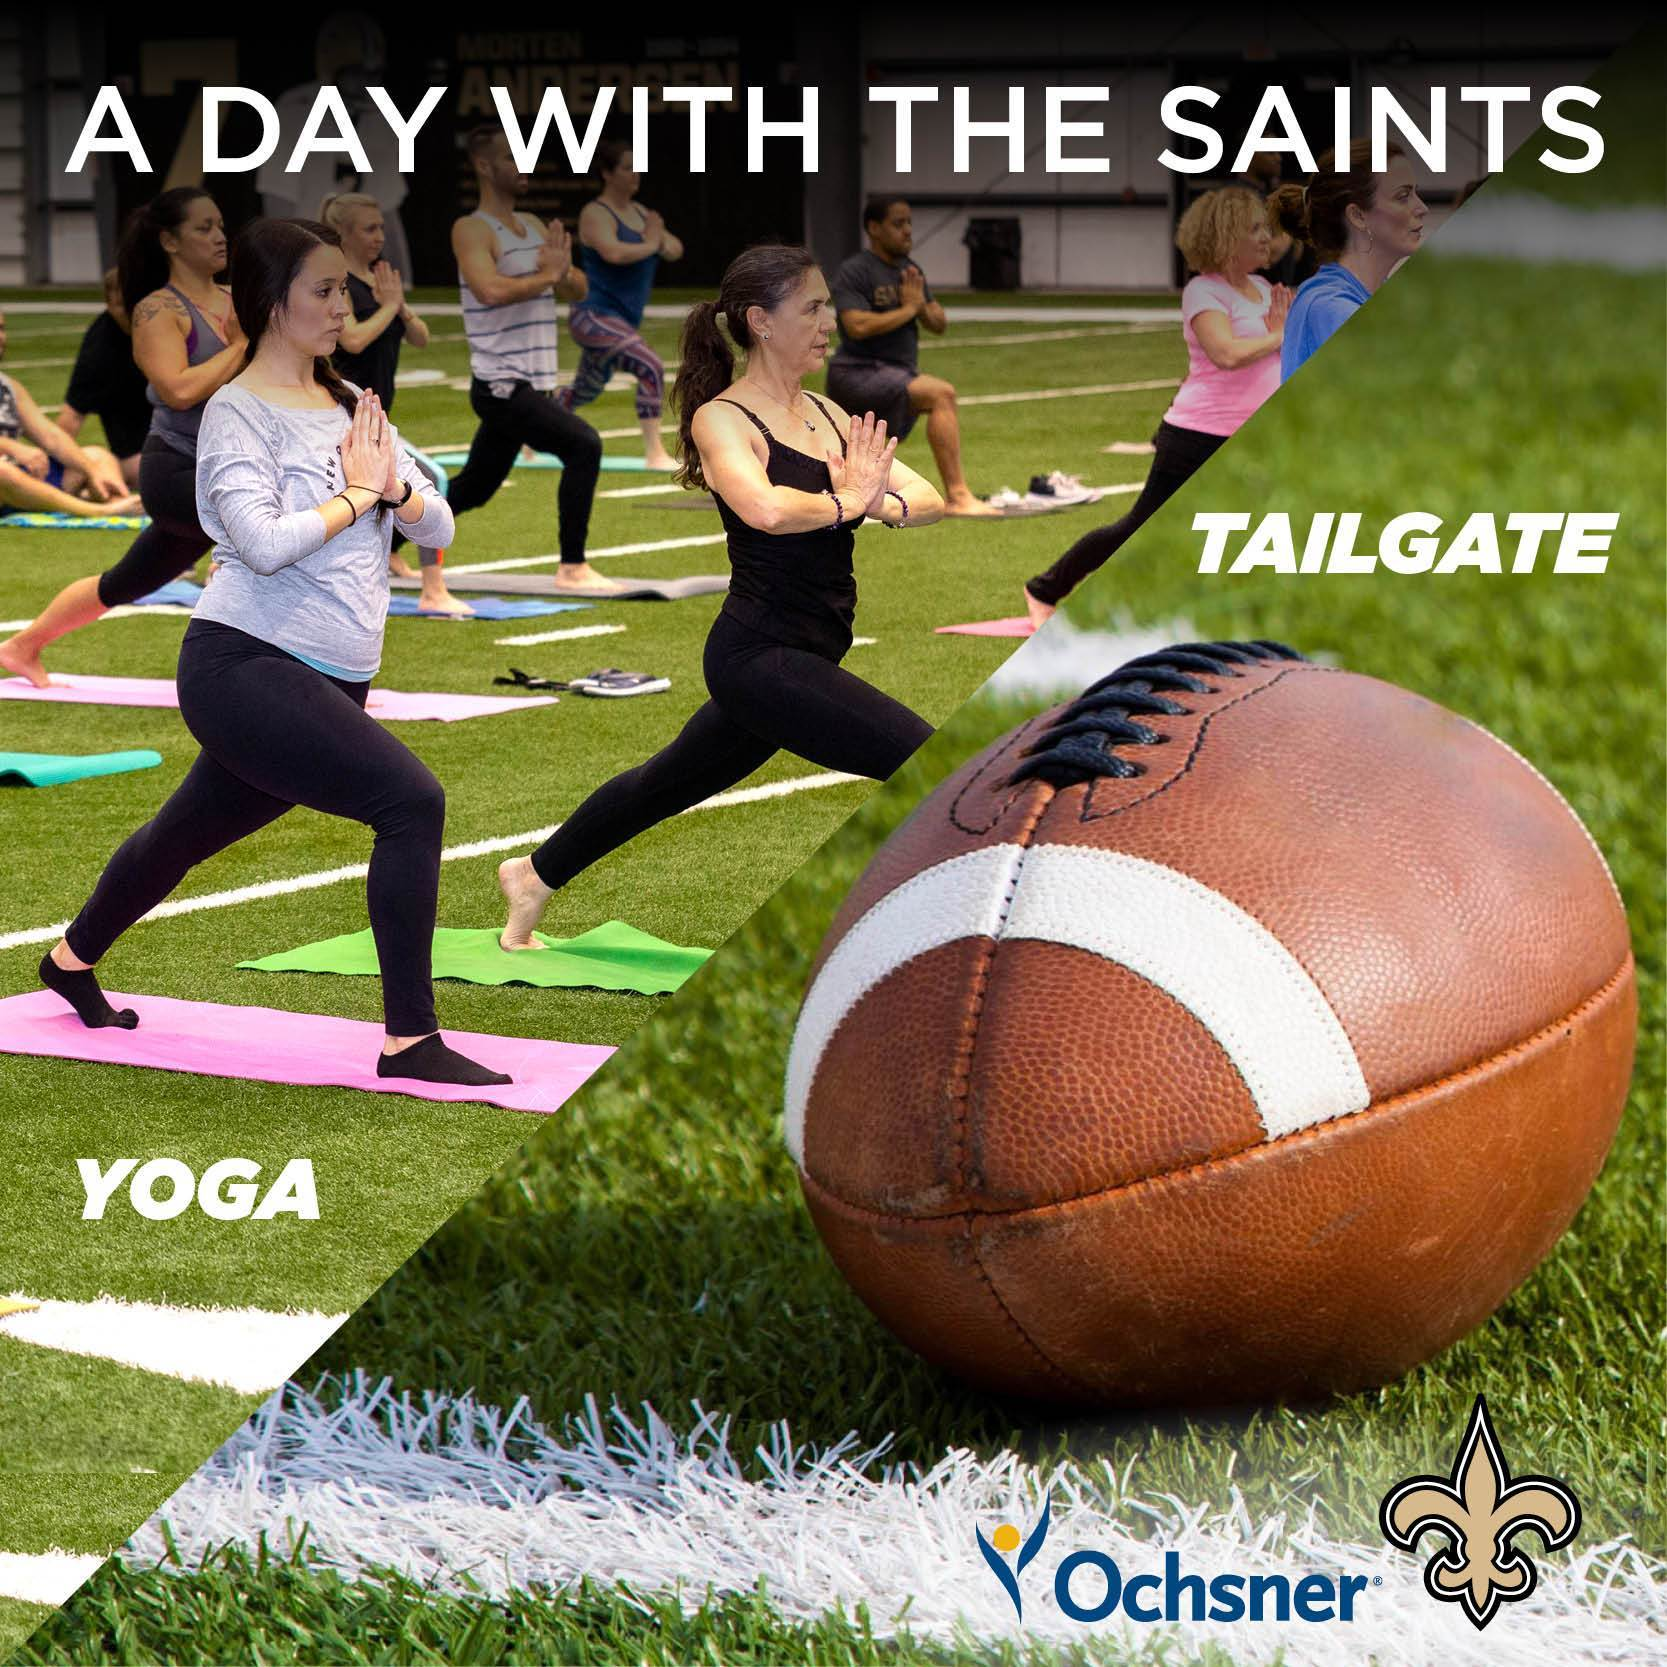 A Day with the Saints